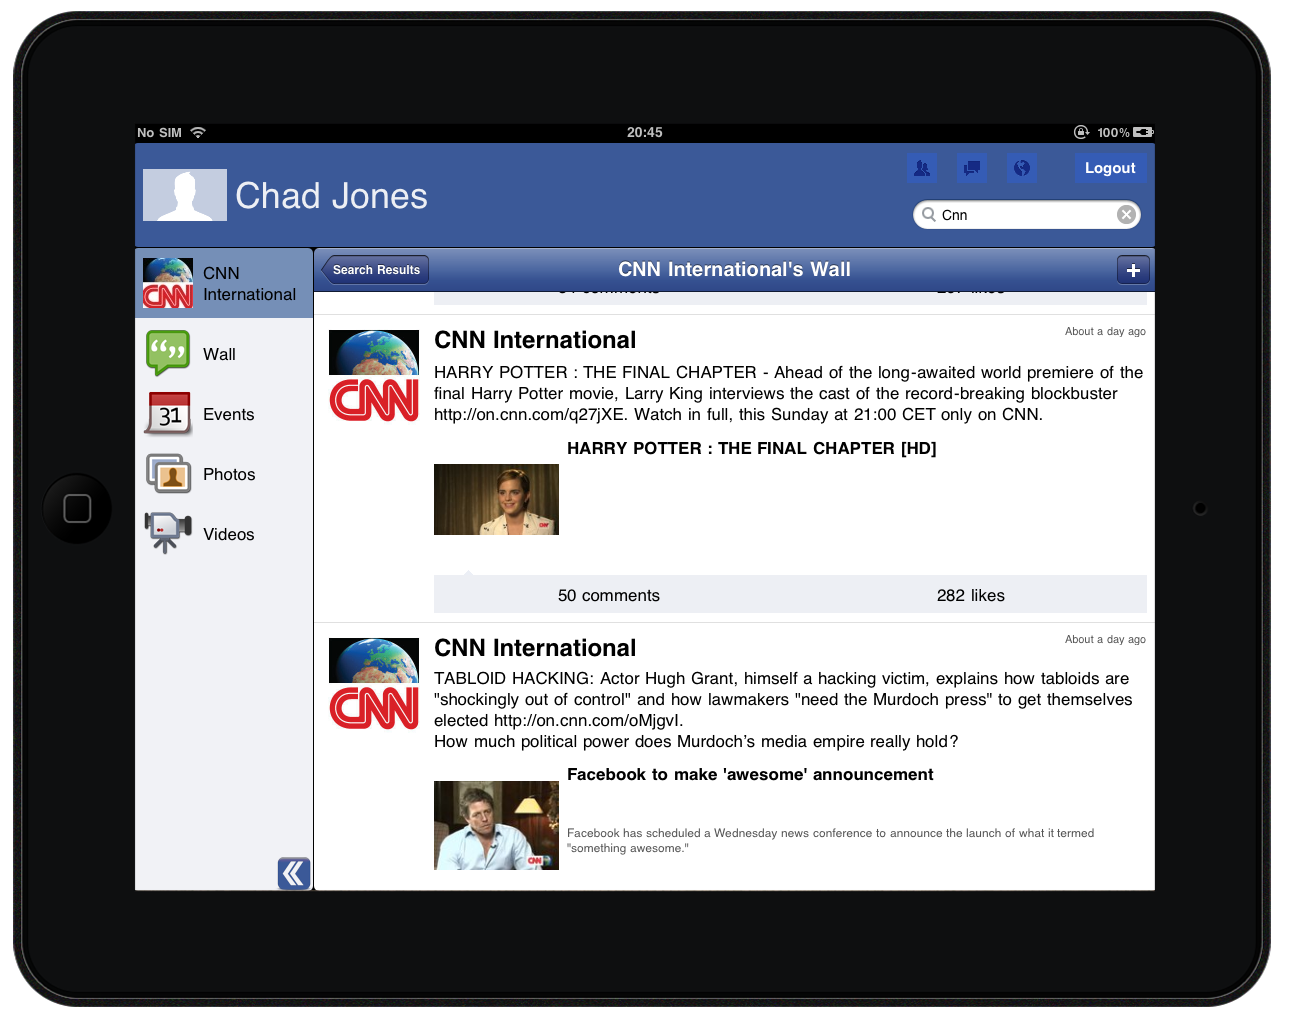 <br /> <b>Notice</b>:  Undefined variable: screenhot_alt in <b>/var/www/html/wp-content/themes/PushInteractions/single-application.php</b> on line <b>261</b><br /> iPad